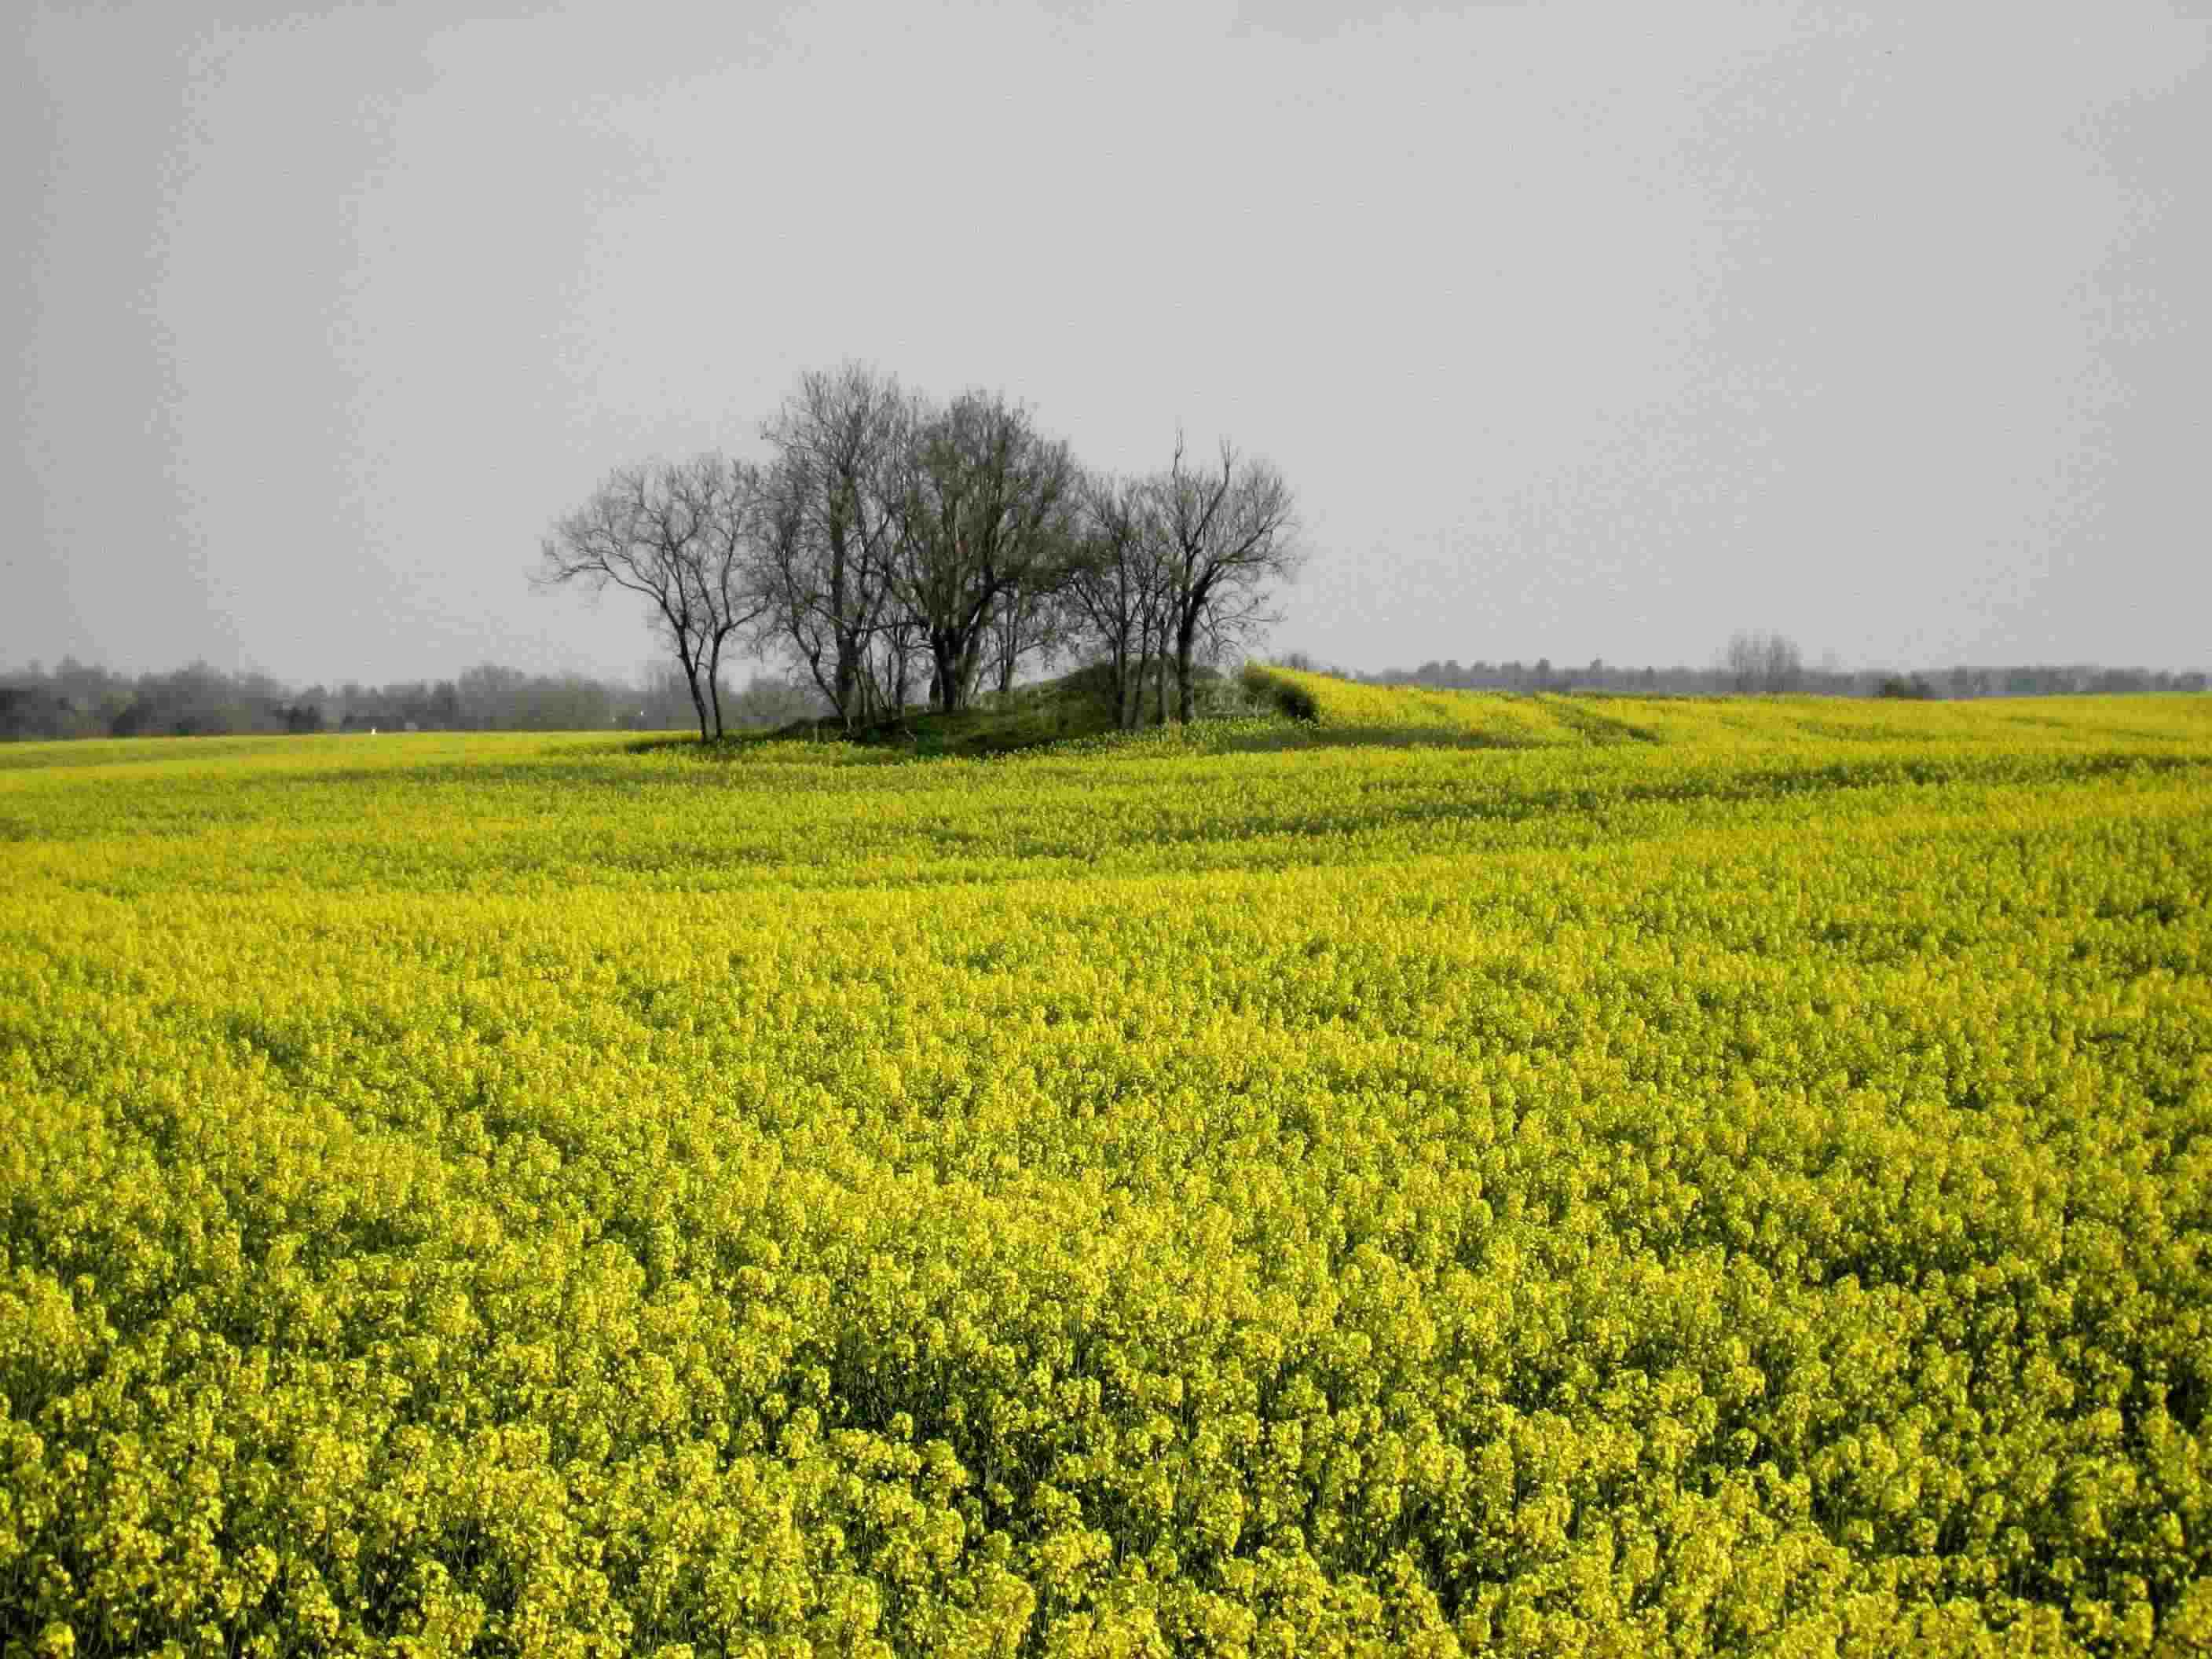 Index Scenic fields of yellow